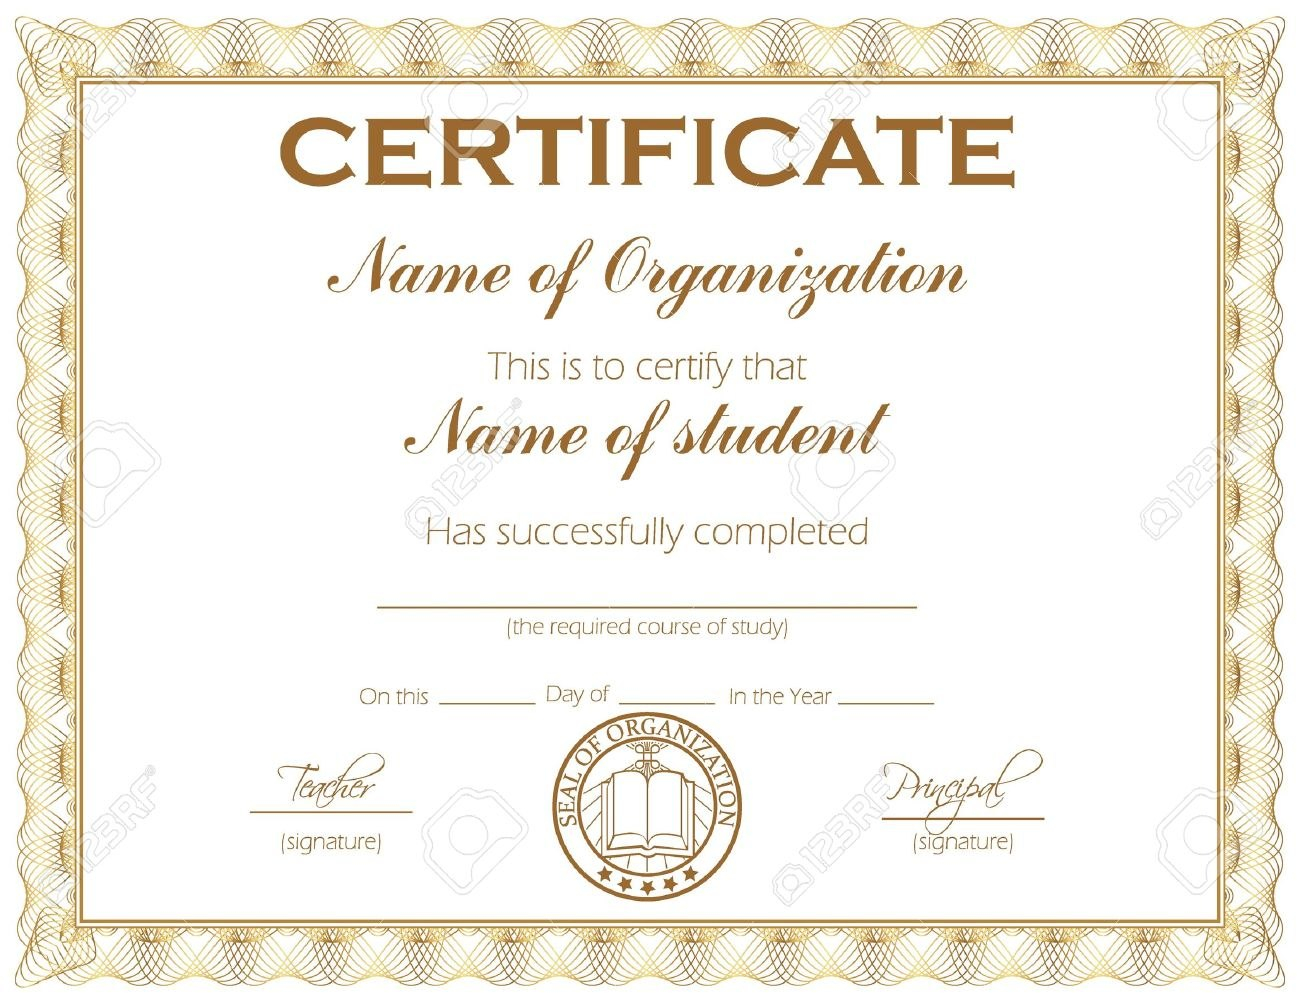 General Purpose Certificate Or Award With Sample Text That Can Pertaining To Template For Certificate Of Award